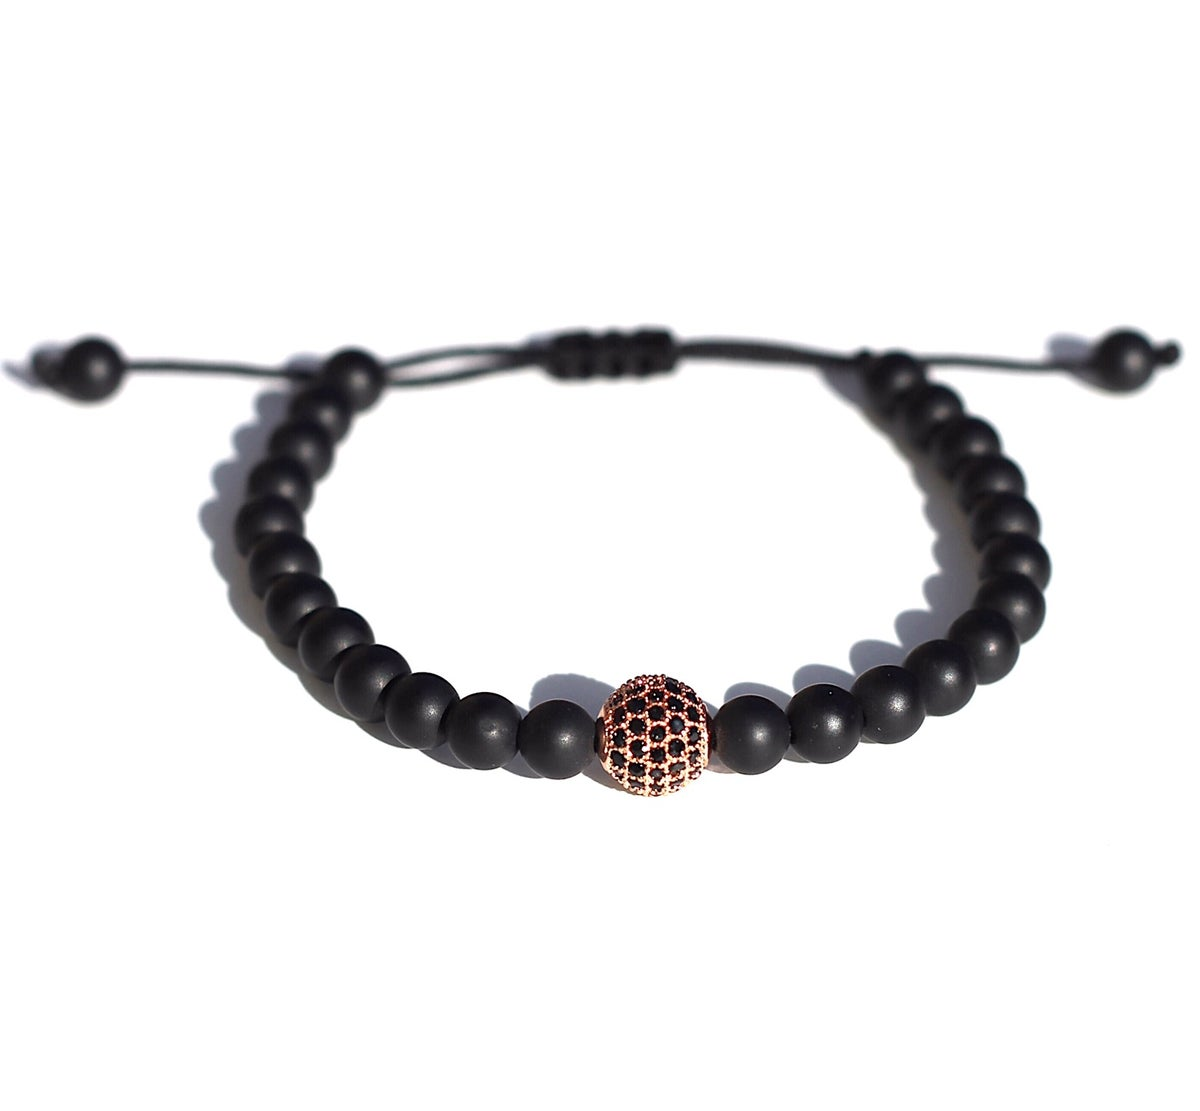 bead bd black web bracelet b gs products smile and agate rosegold